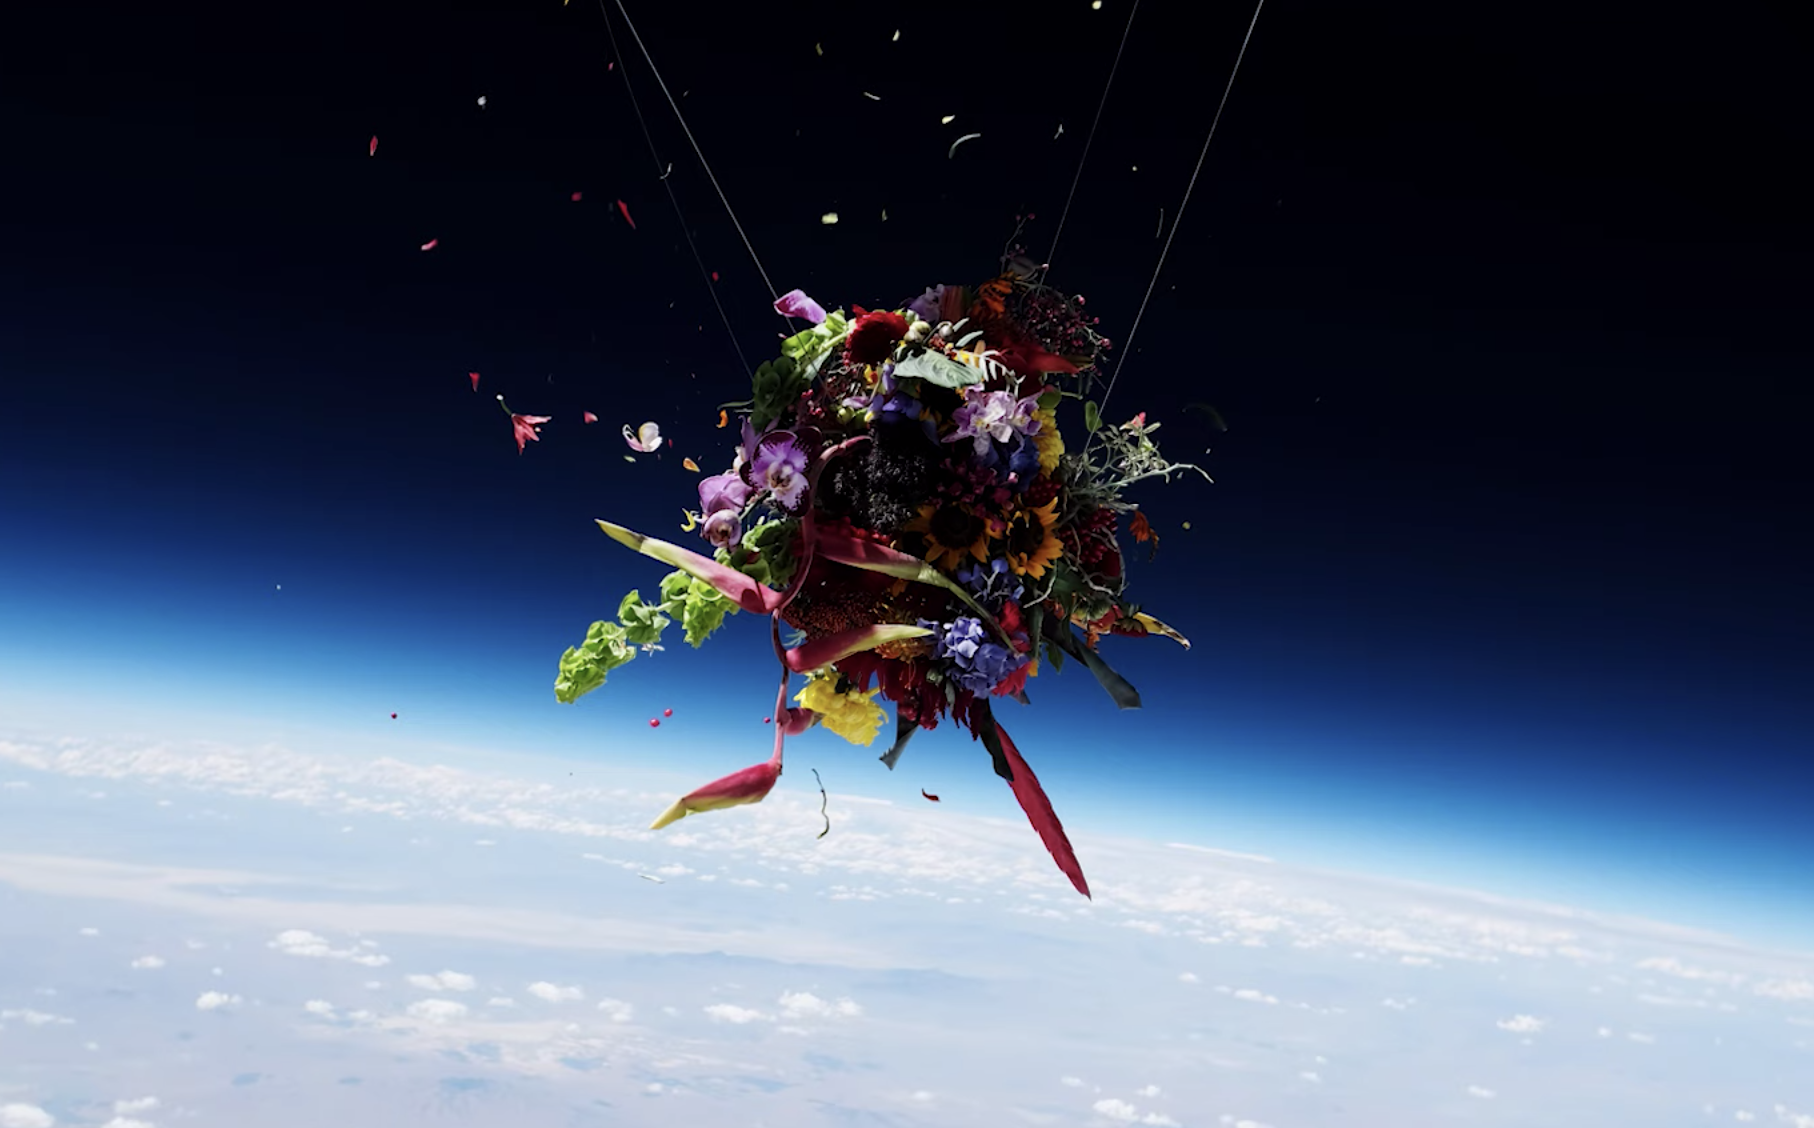 flowers floating in space above the earth